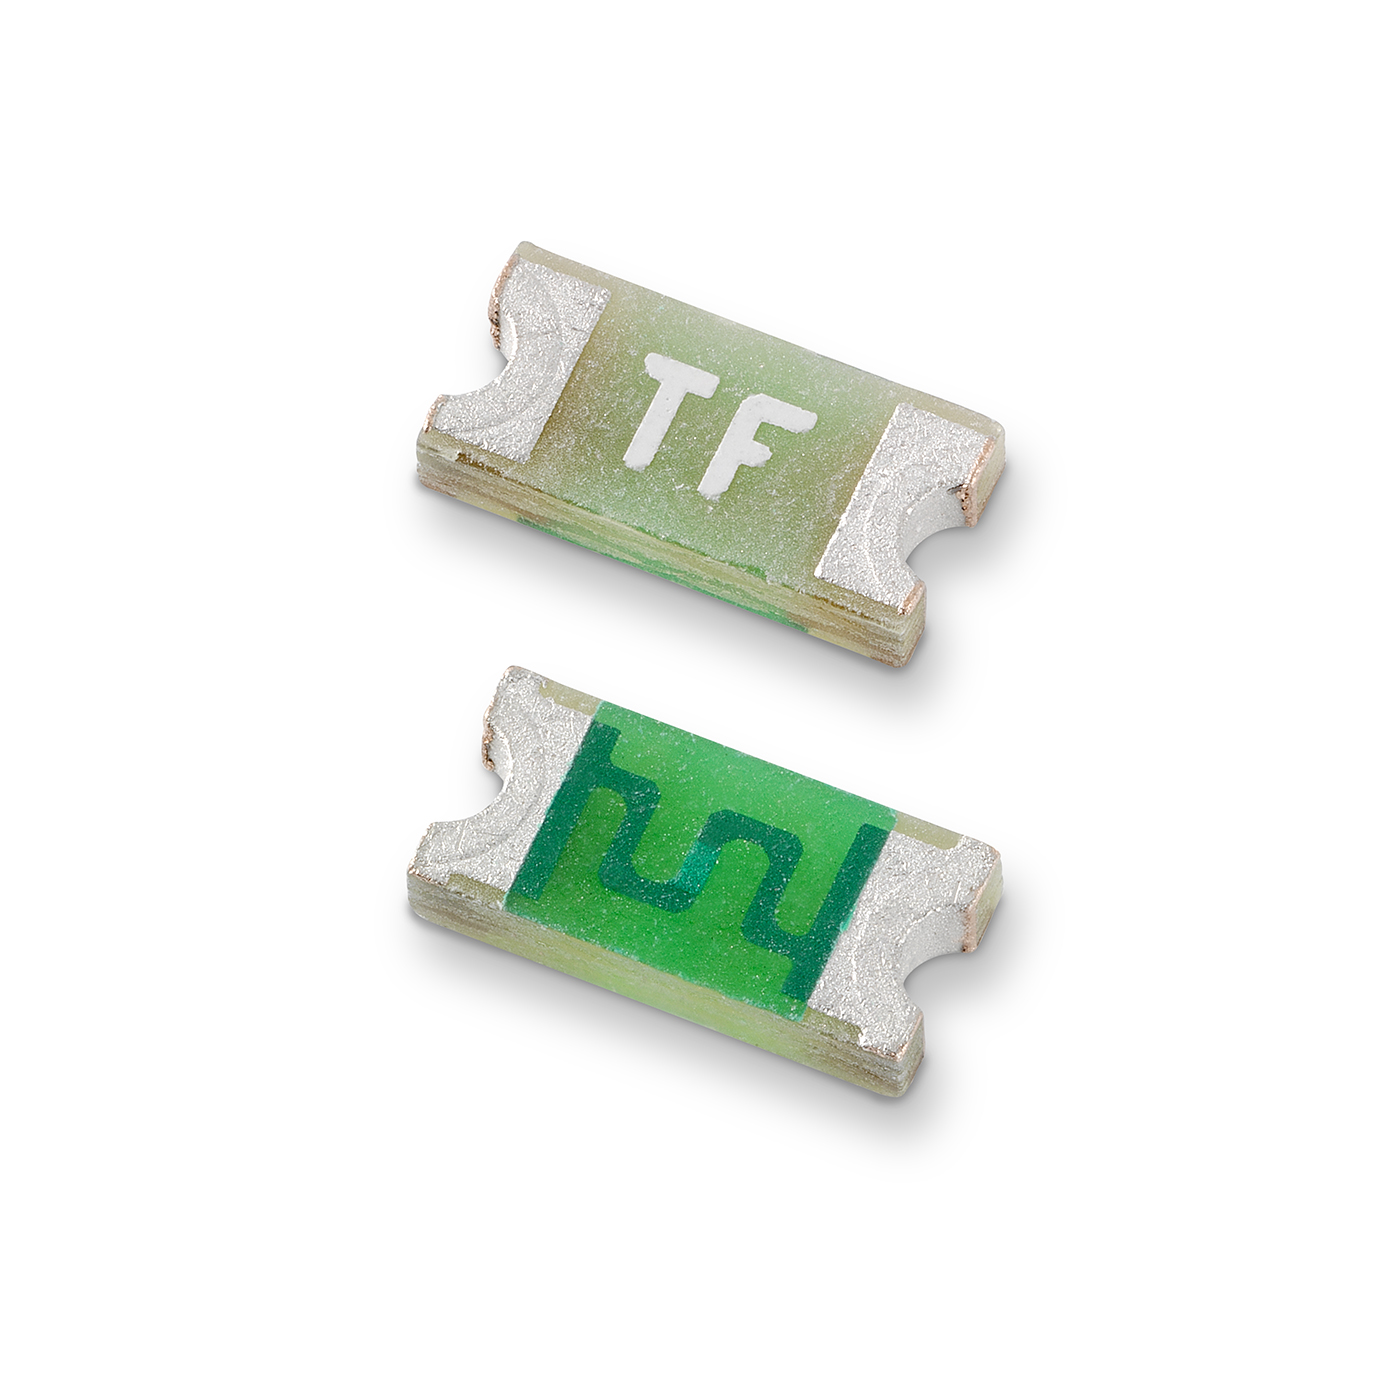 468 Series Thin Film Chip Fuses Surface Mount From Littelfuse Fuse Box Holder